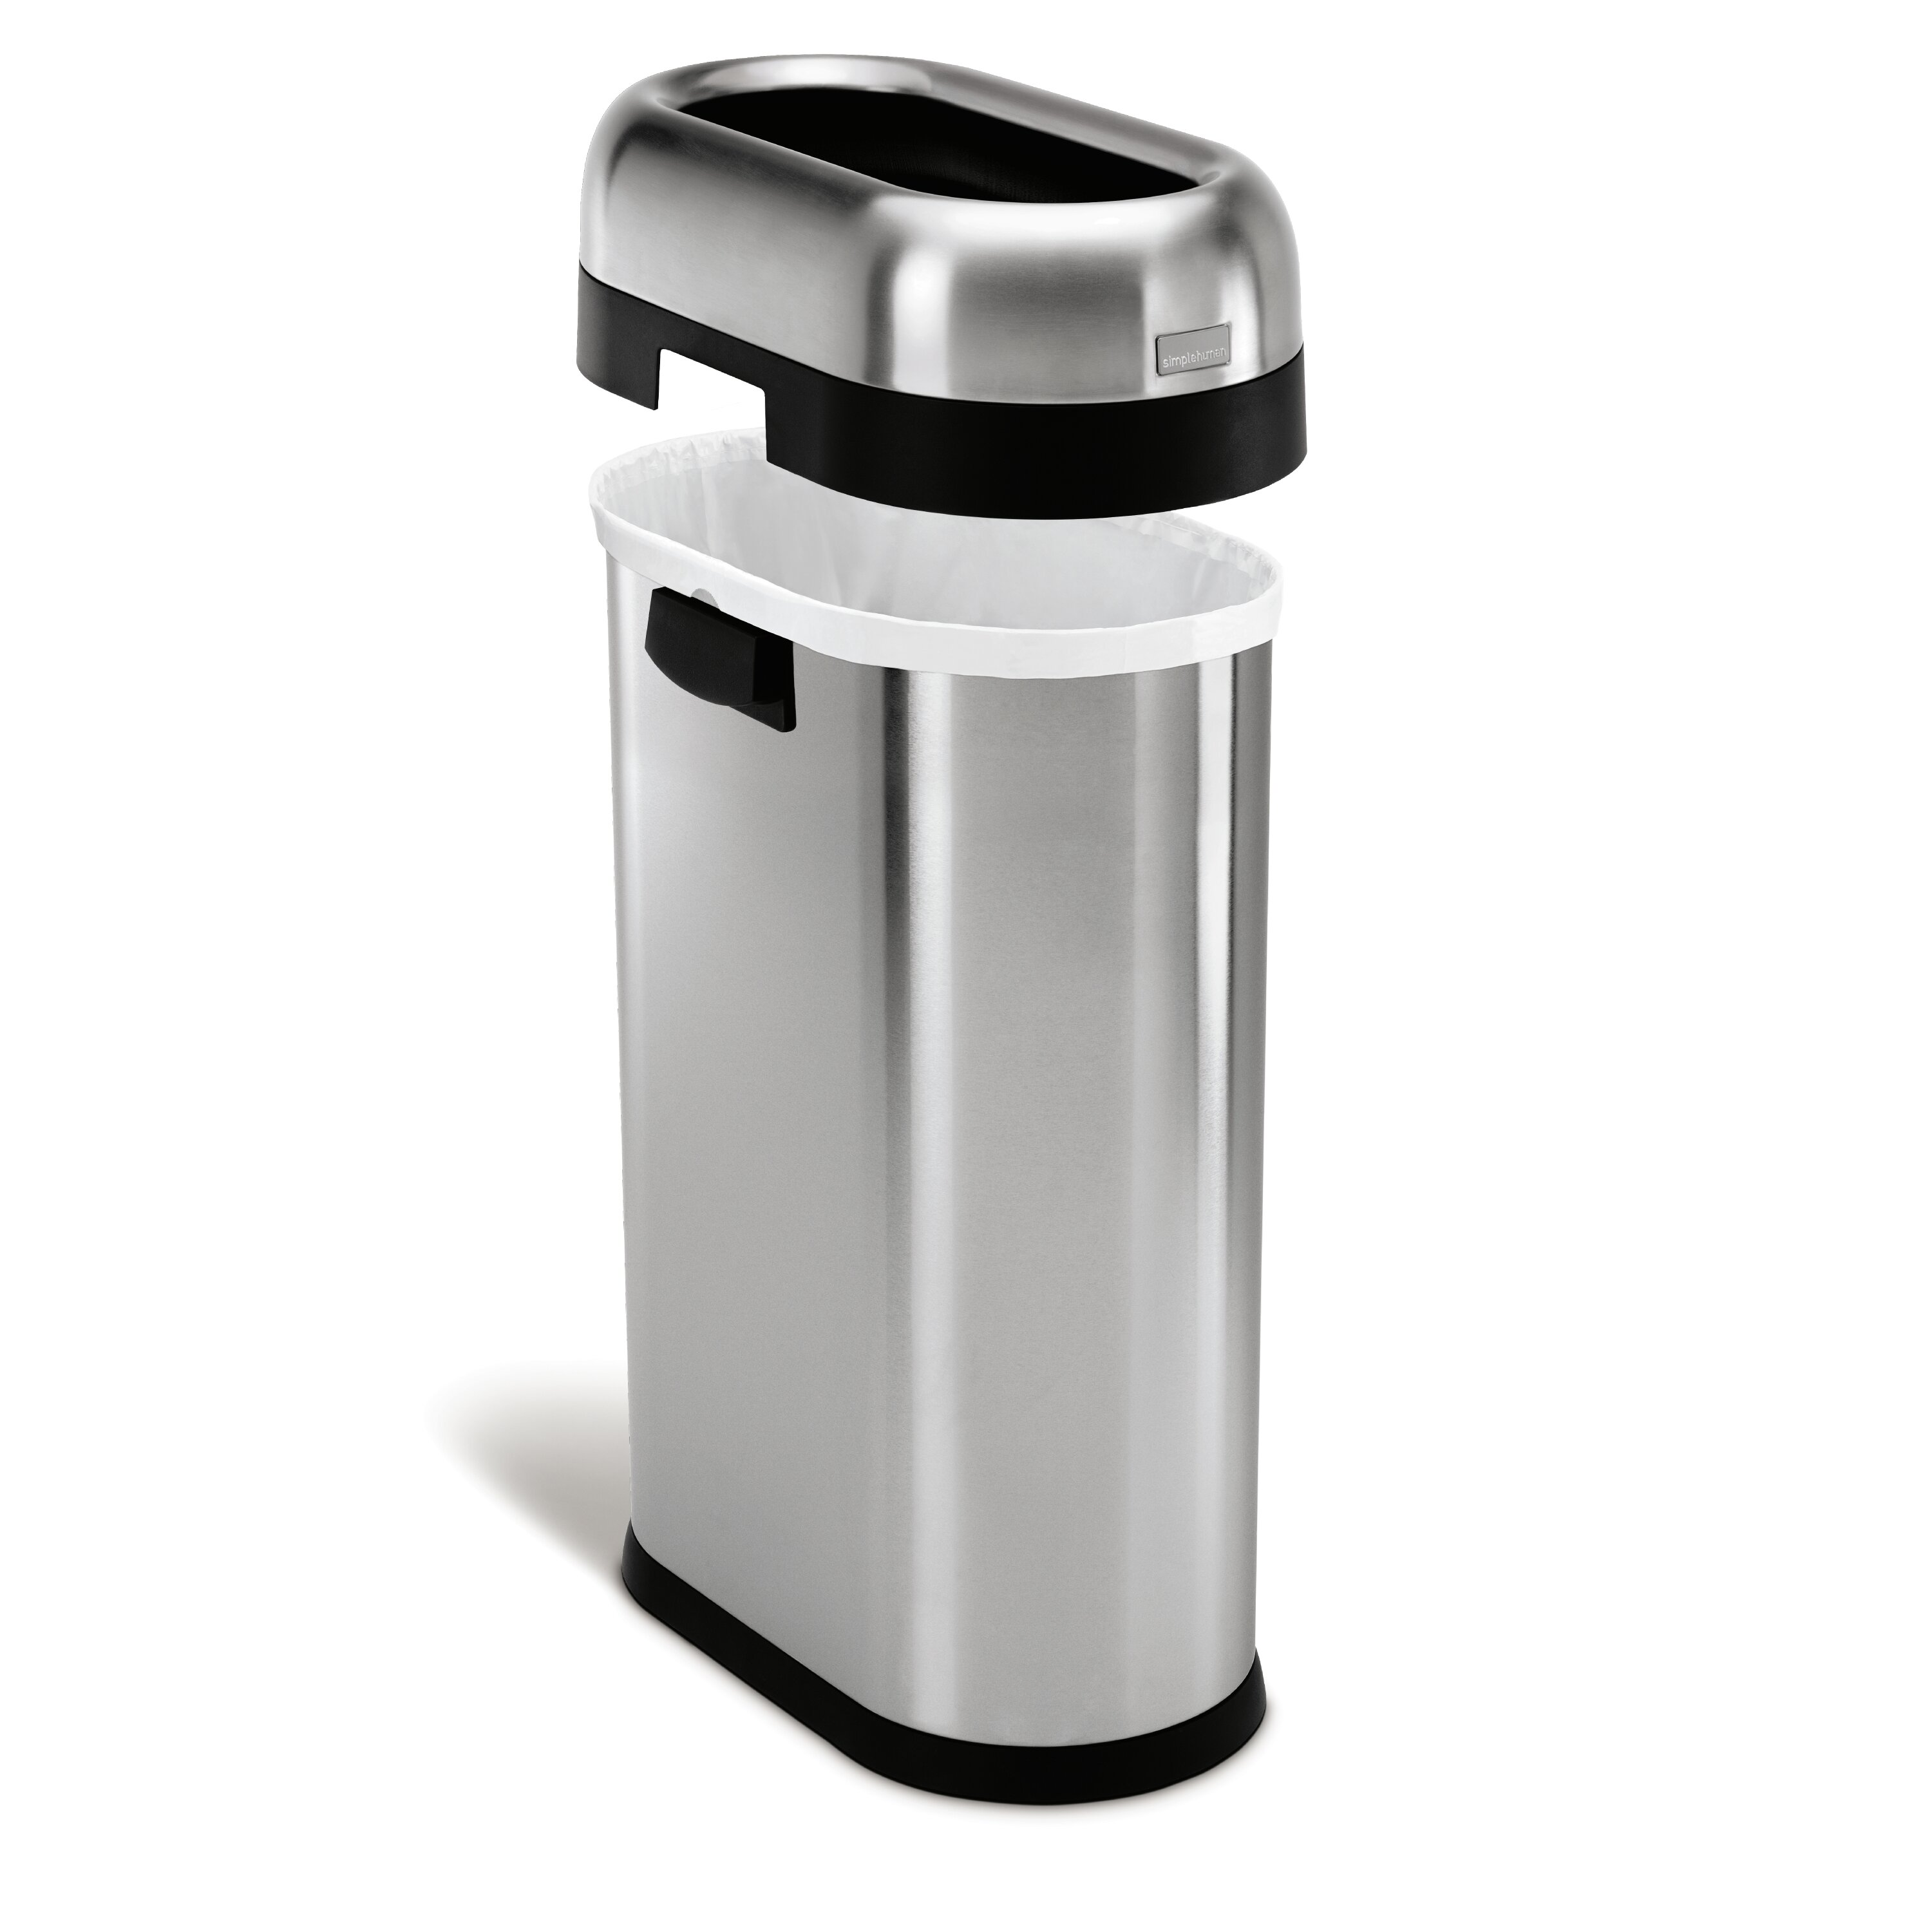 Simplehuman 50 l 13 gal slim open trash can commercial grade stainless steel reviews - Slim garbage cans for kitchen ...